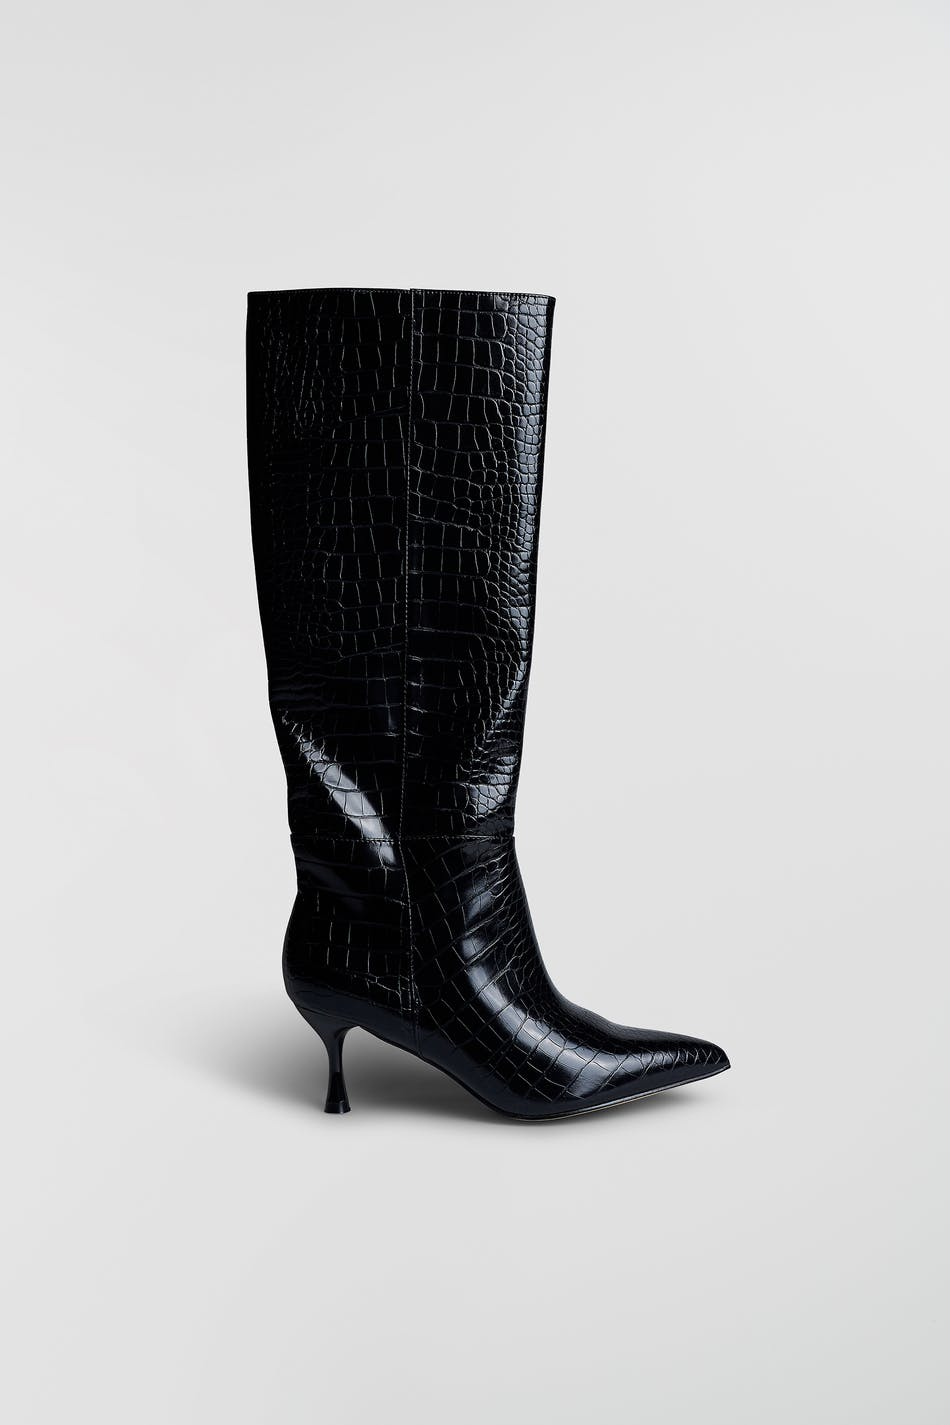 Gina Tricot Lindsey high heel boots